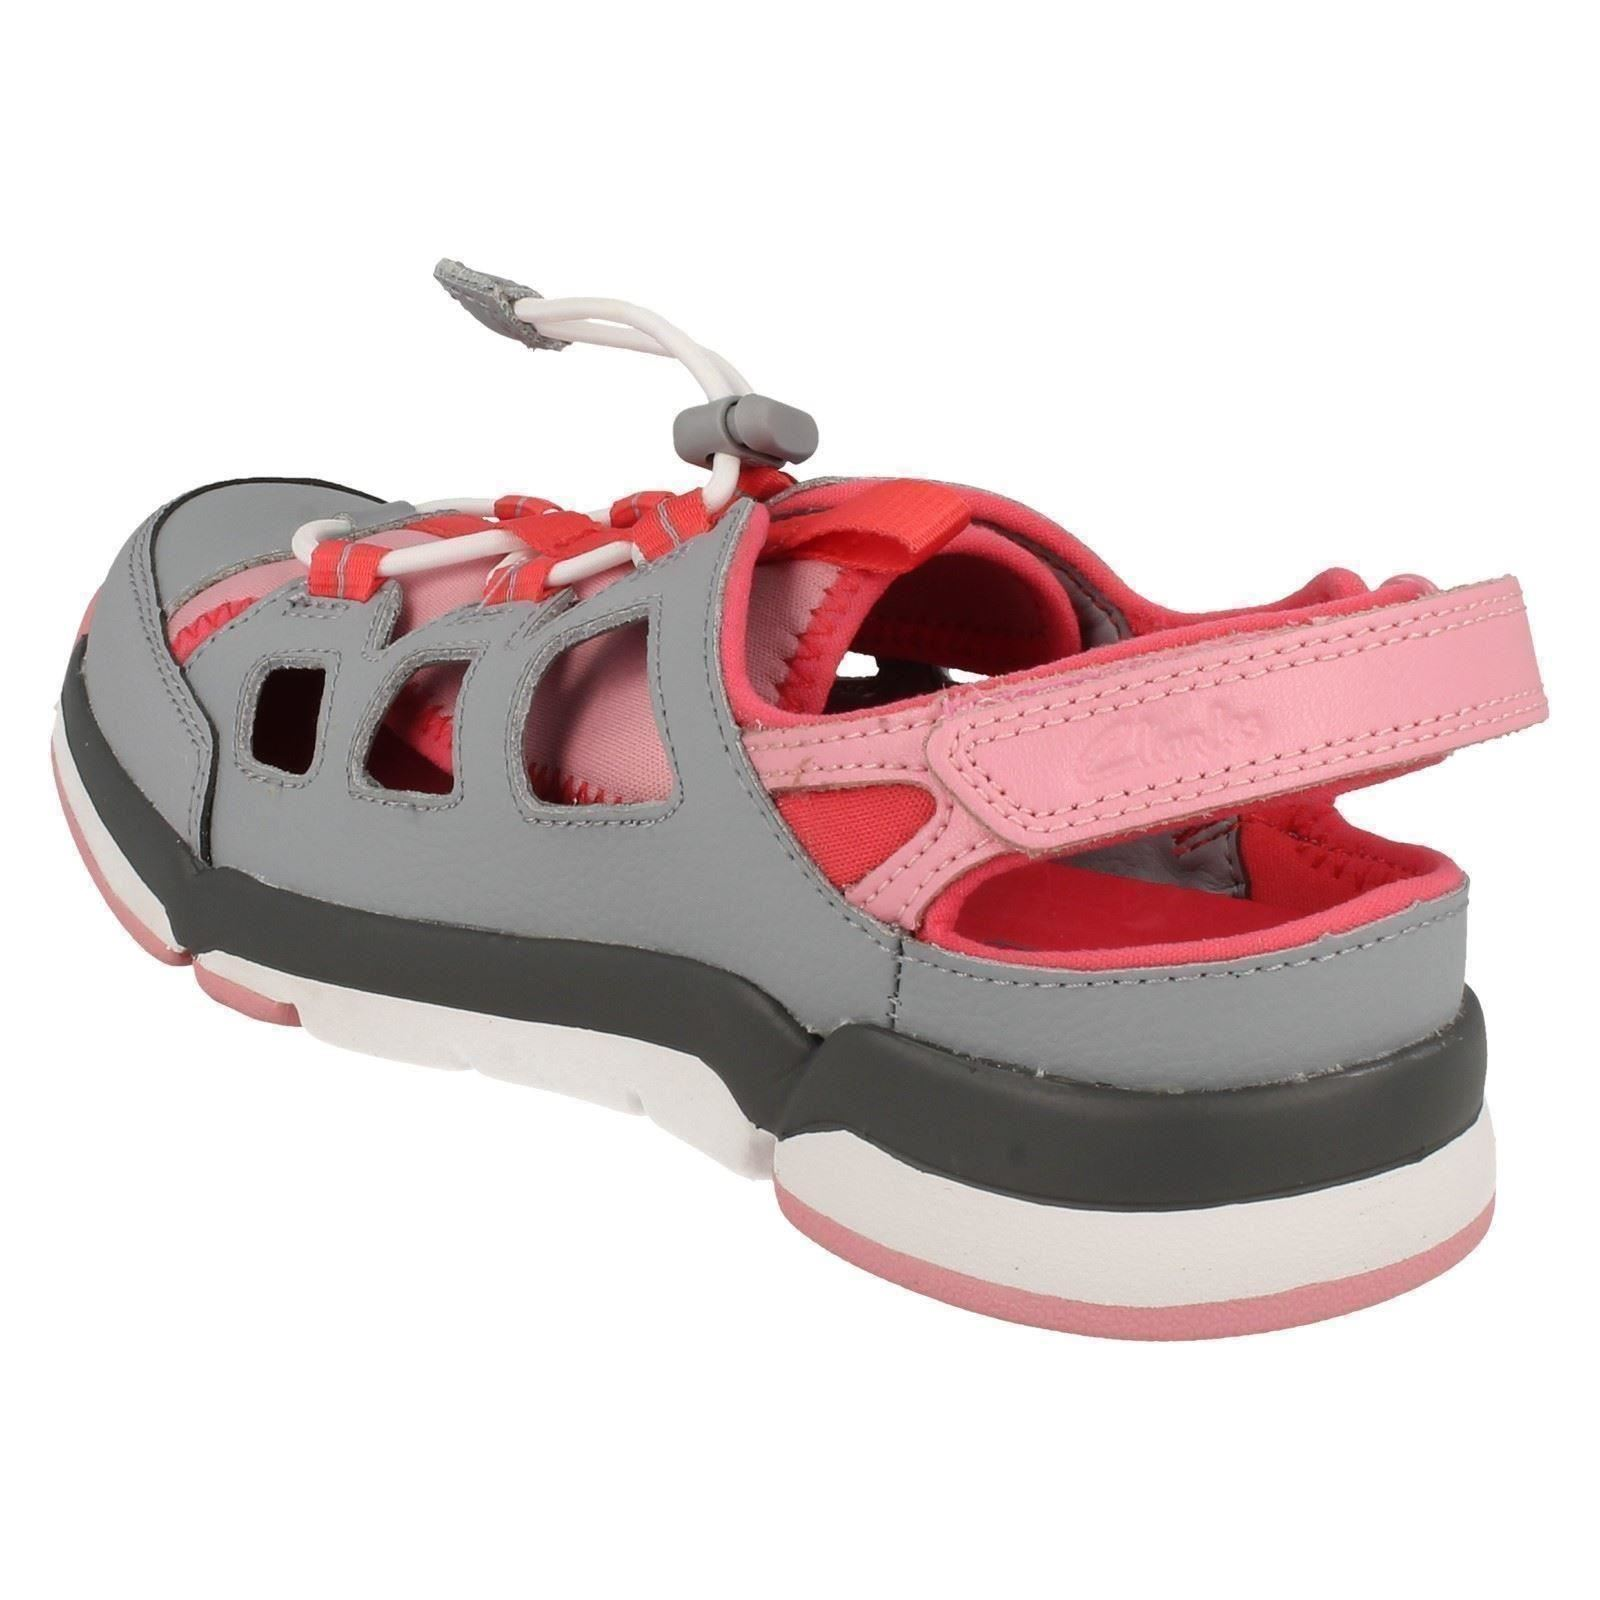 Girls Clarks Closed Toe Summer Sandals /'Tri Surf/'